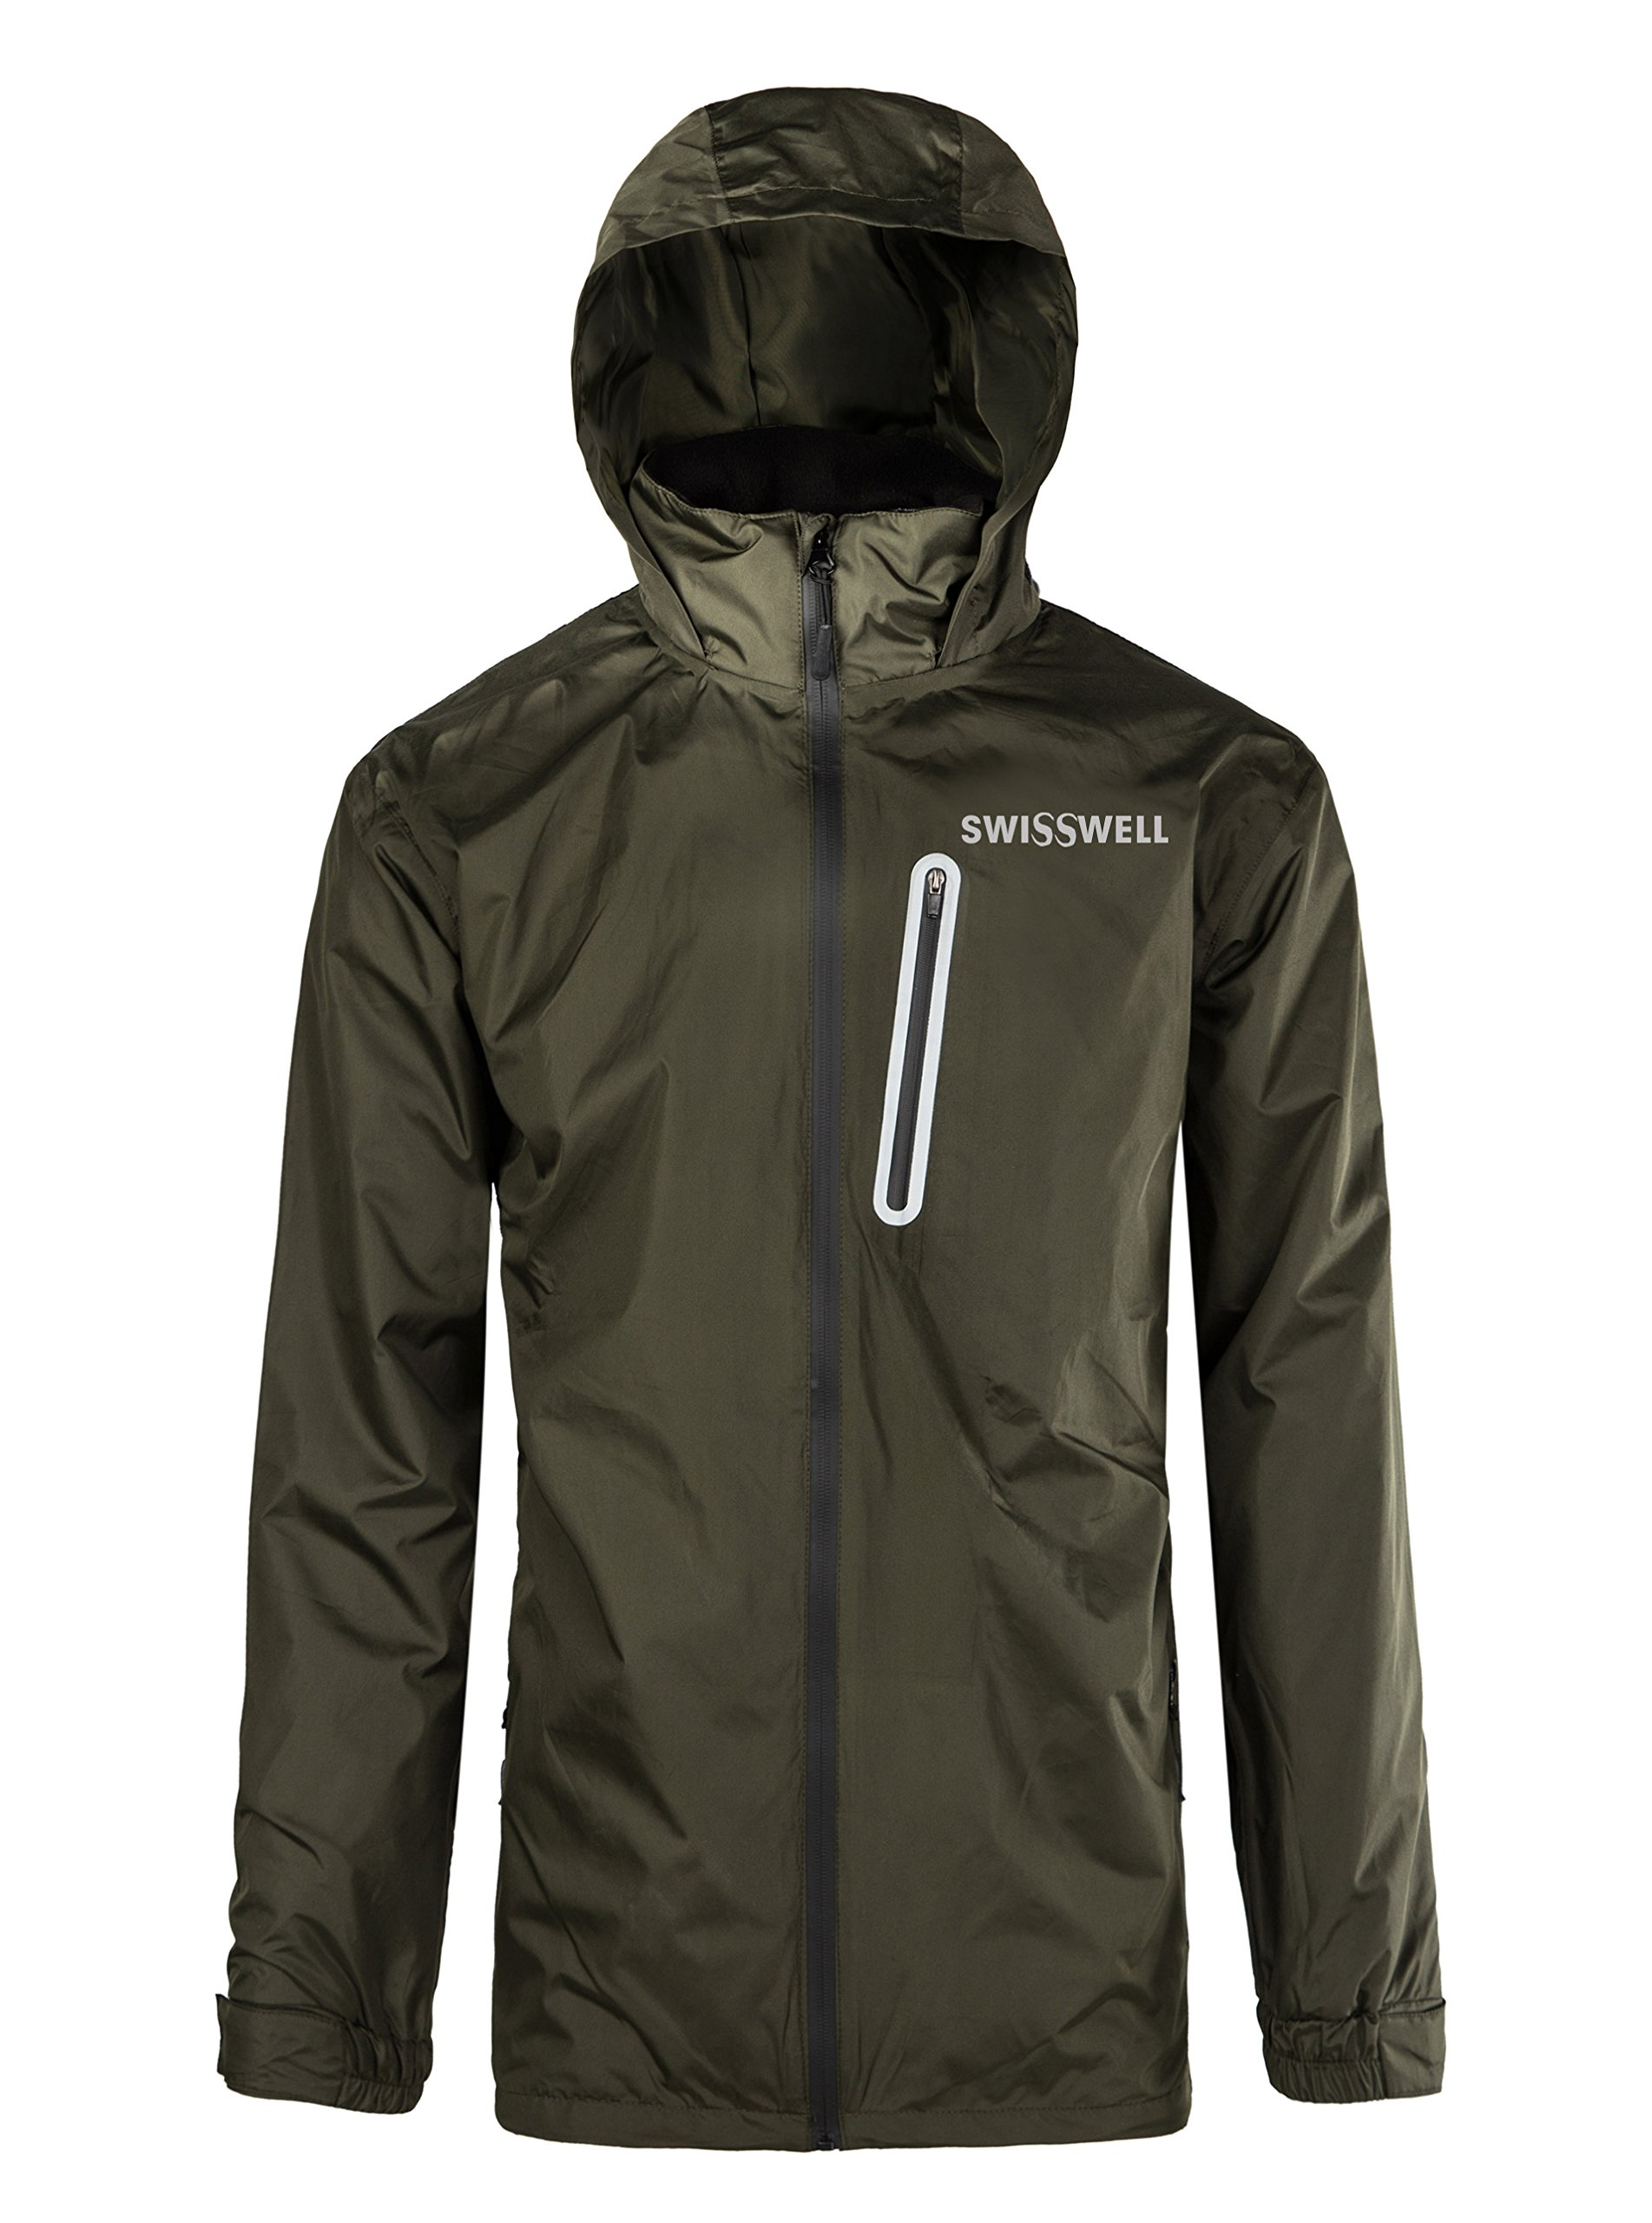 SWISSWELL Waterproof Hooded Raincoats for Men Olive-Green Small by SWISSWELL